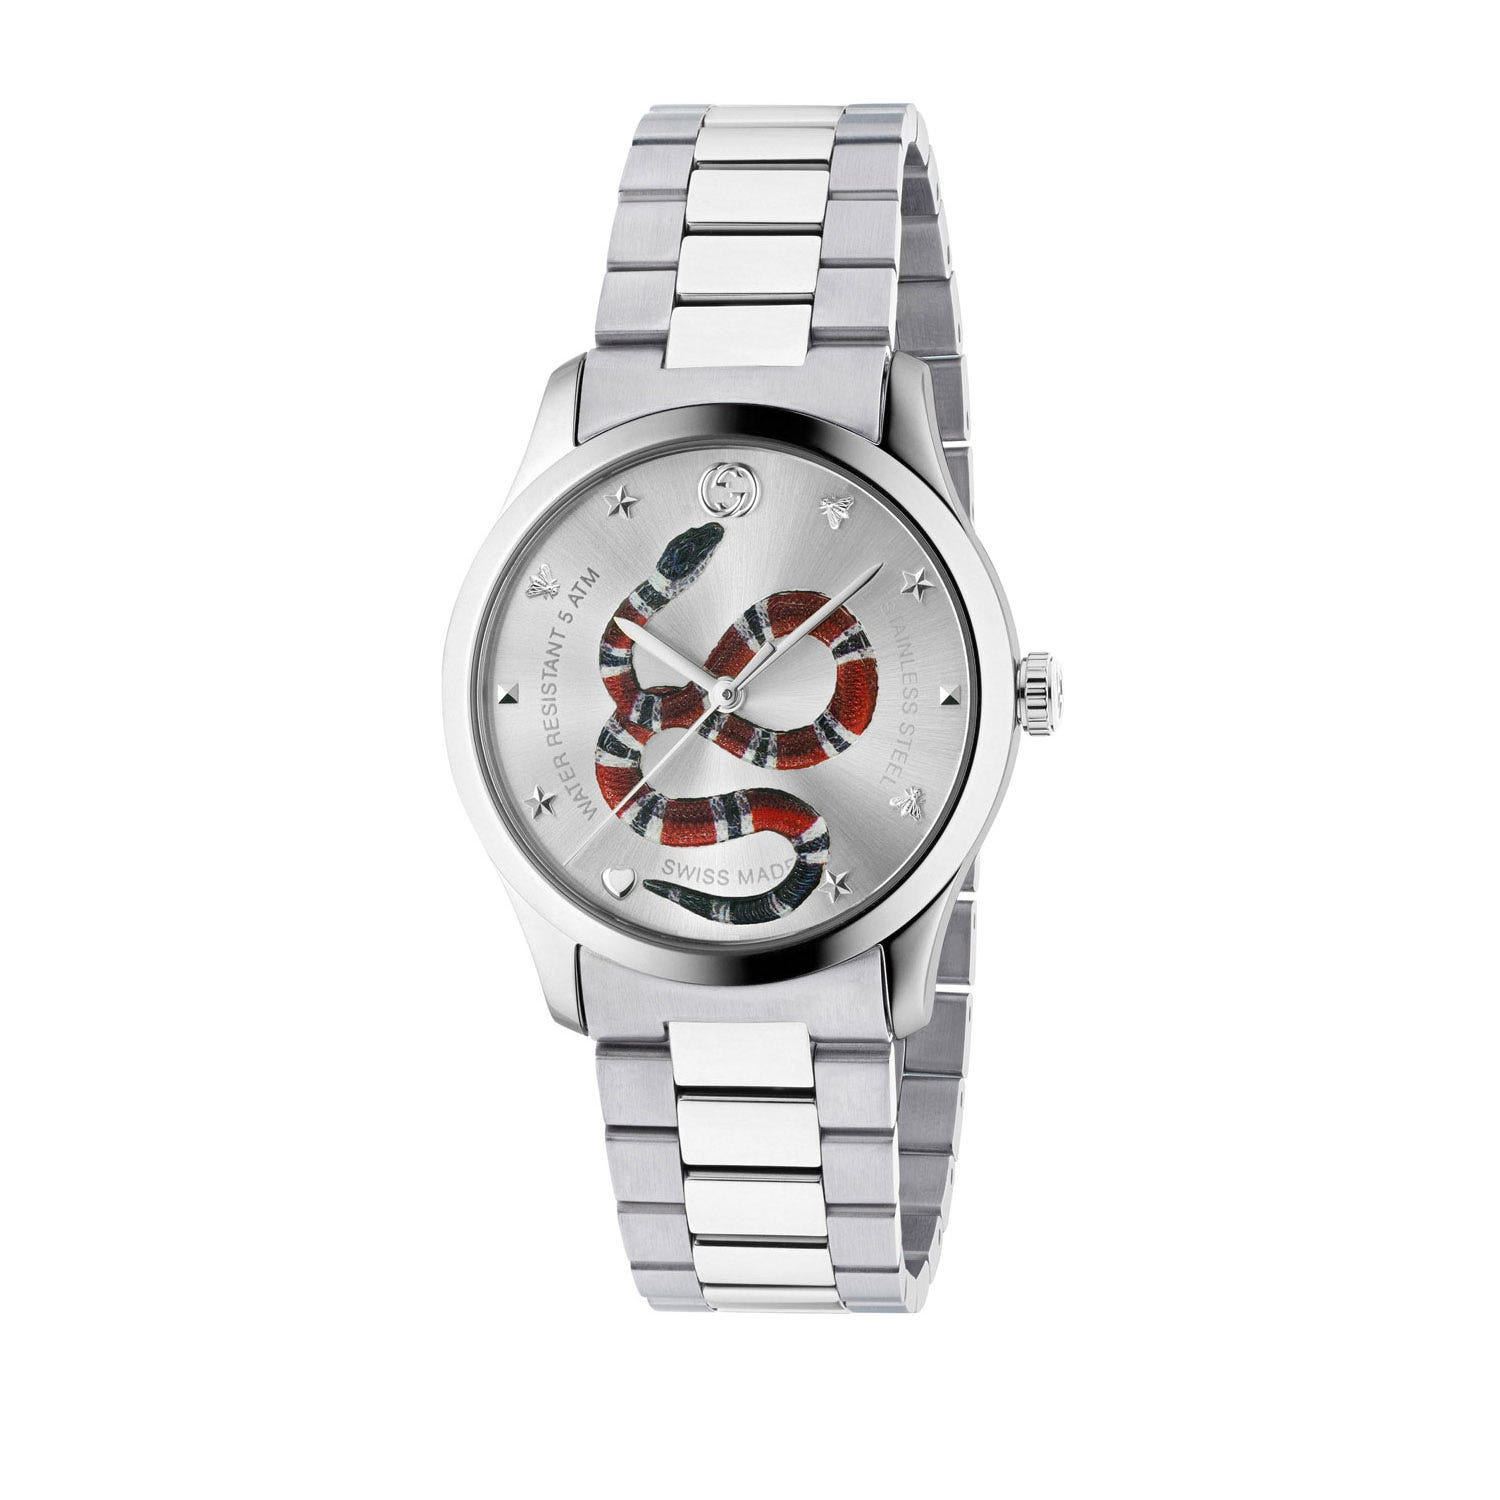 Gucci G-Timeless 38mm Quartz Snake Dial Stainless Steel Men's Watch